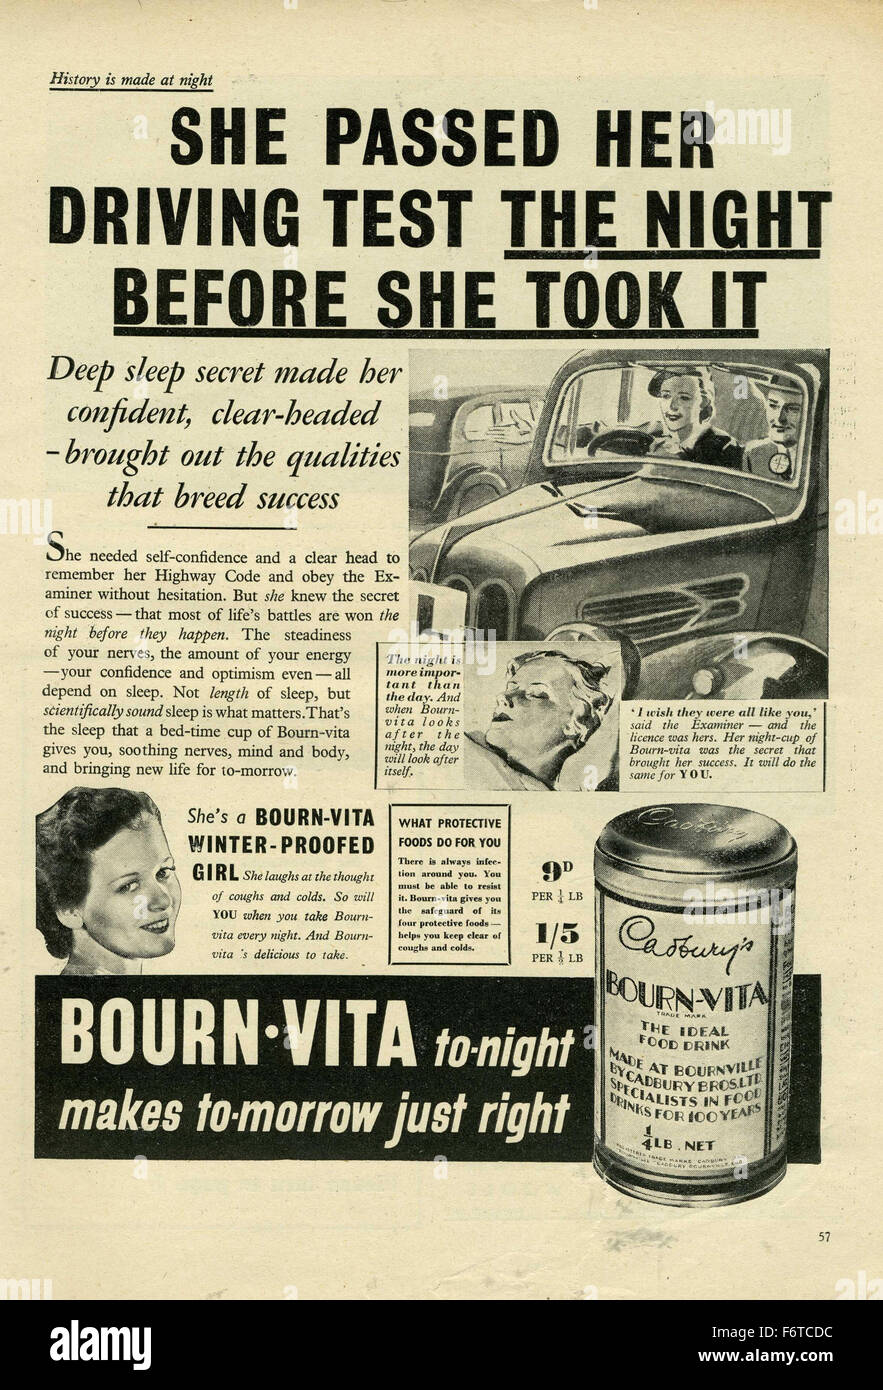 Bournvita 1938 Advert She passed her Driving Test the night before she took it - Stock Image